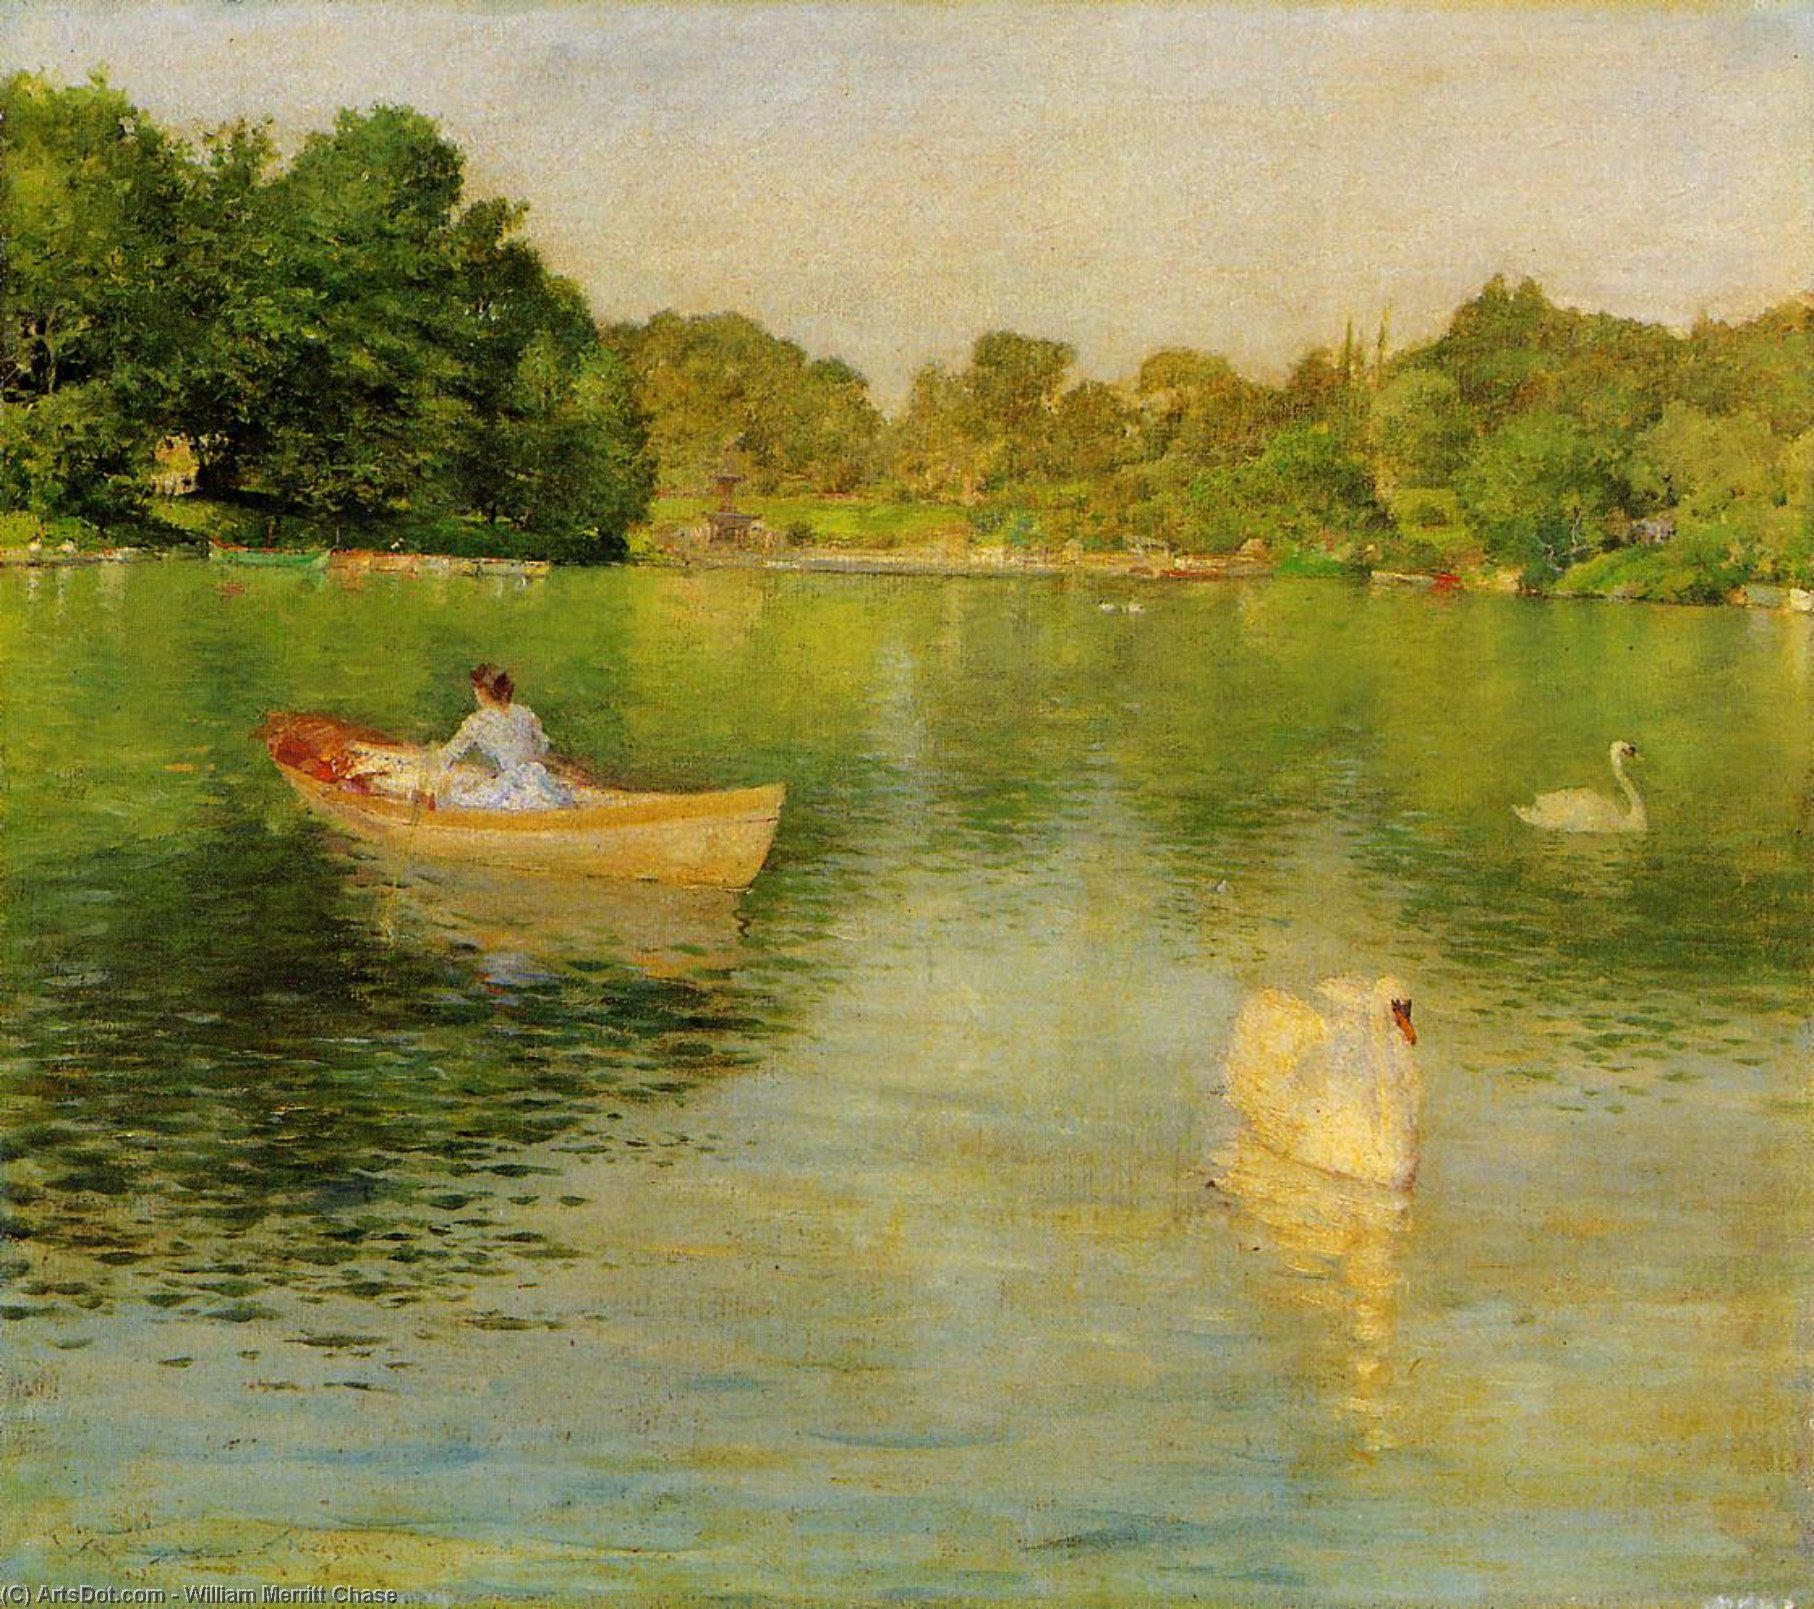 à lago central parque , óleo sobre painel por William Merritt Chase (1849-1916, United States)